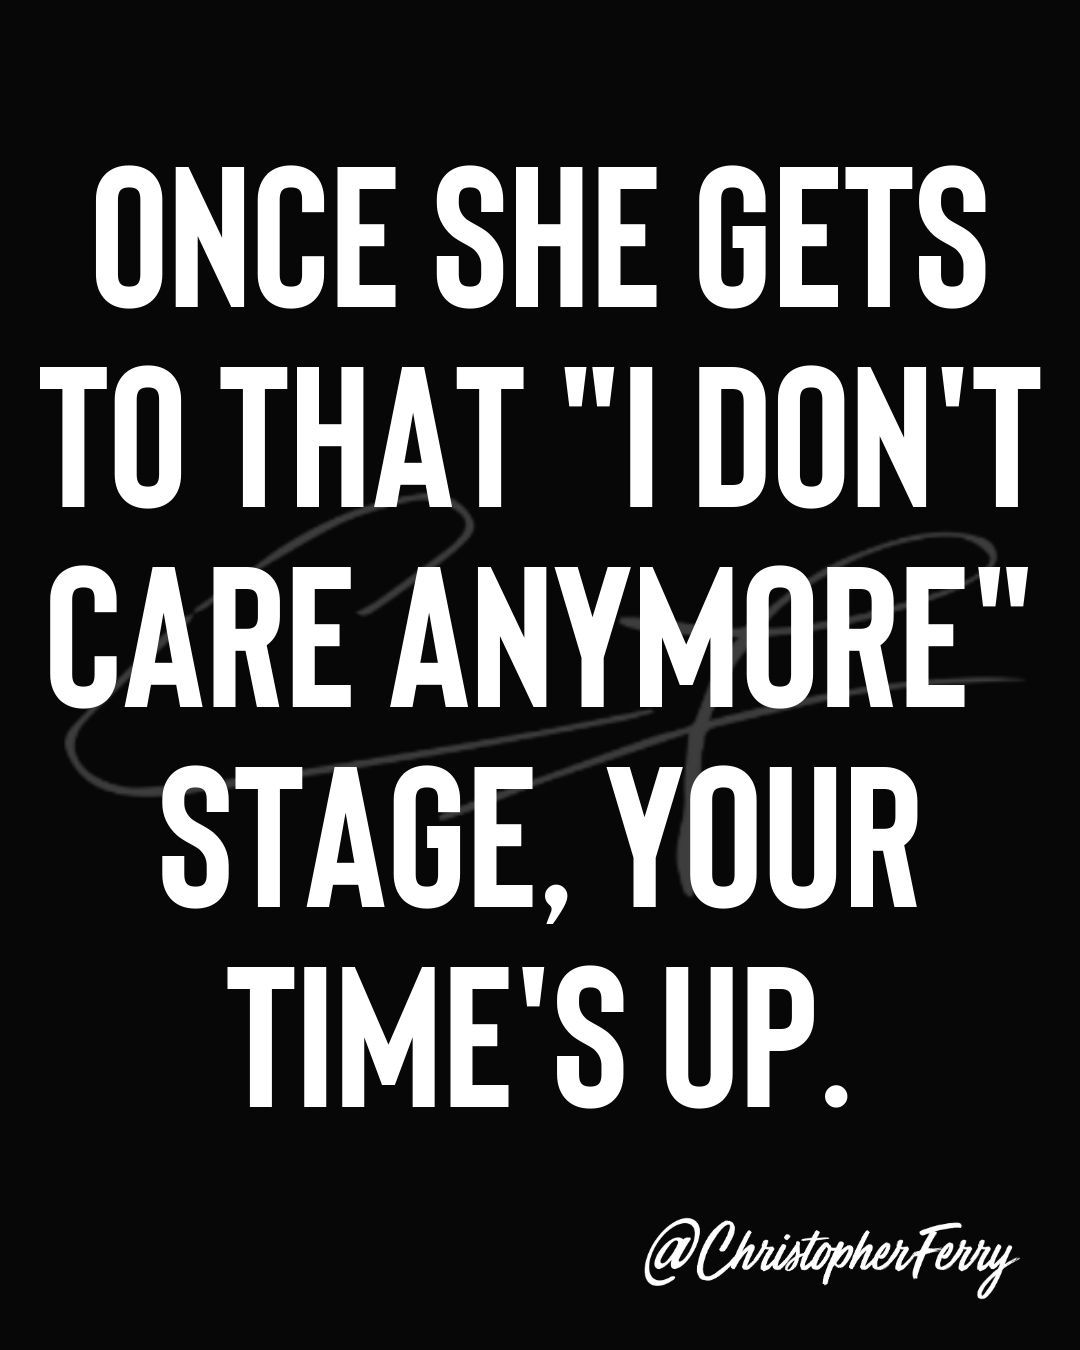 Care anymore when she doesnt The Truth